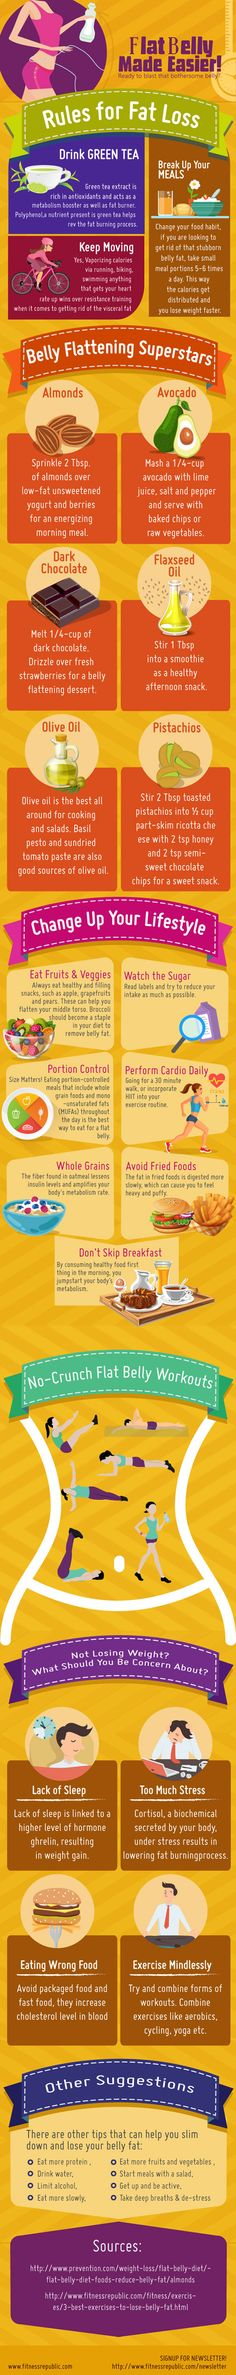 Many of us would love to have a flat belly. You can't just wish for it to happen. You need to eat the right foods and exercise to reach your goals. This infographic from Fitness Republic covers how you can get a flat belly: